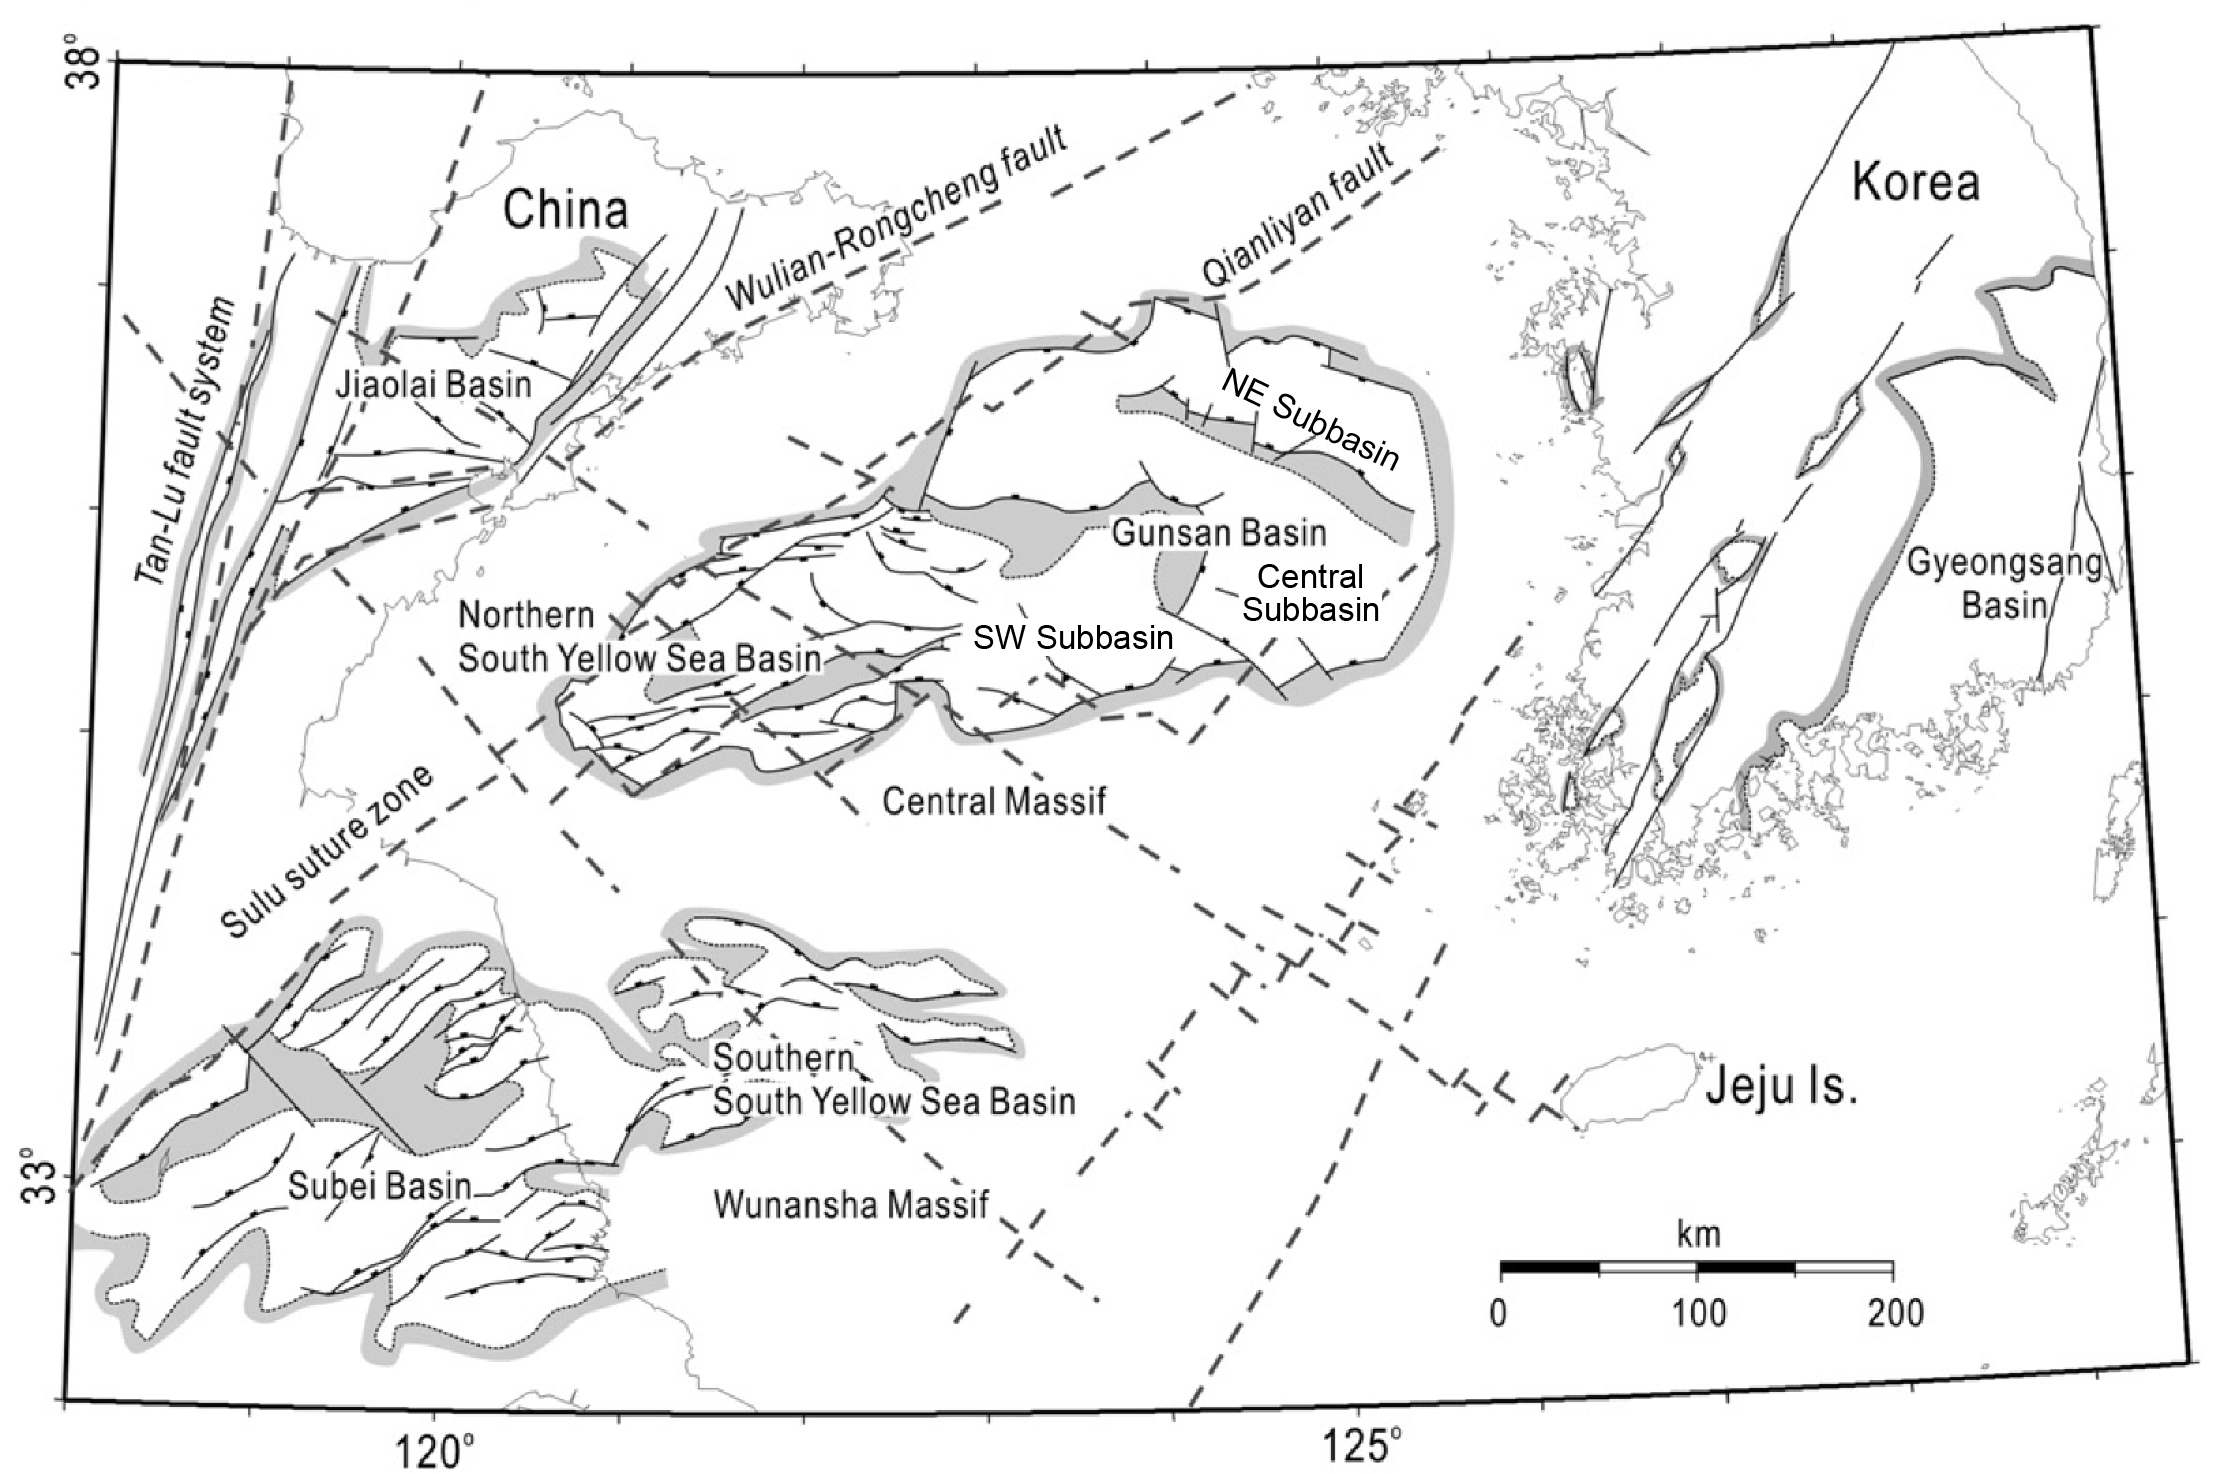 Structural map of continental sedimentary basins between the Tan-Lu fault and strike-slip faults on the Korean Peninsula